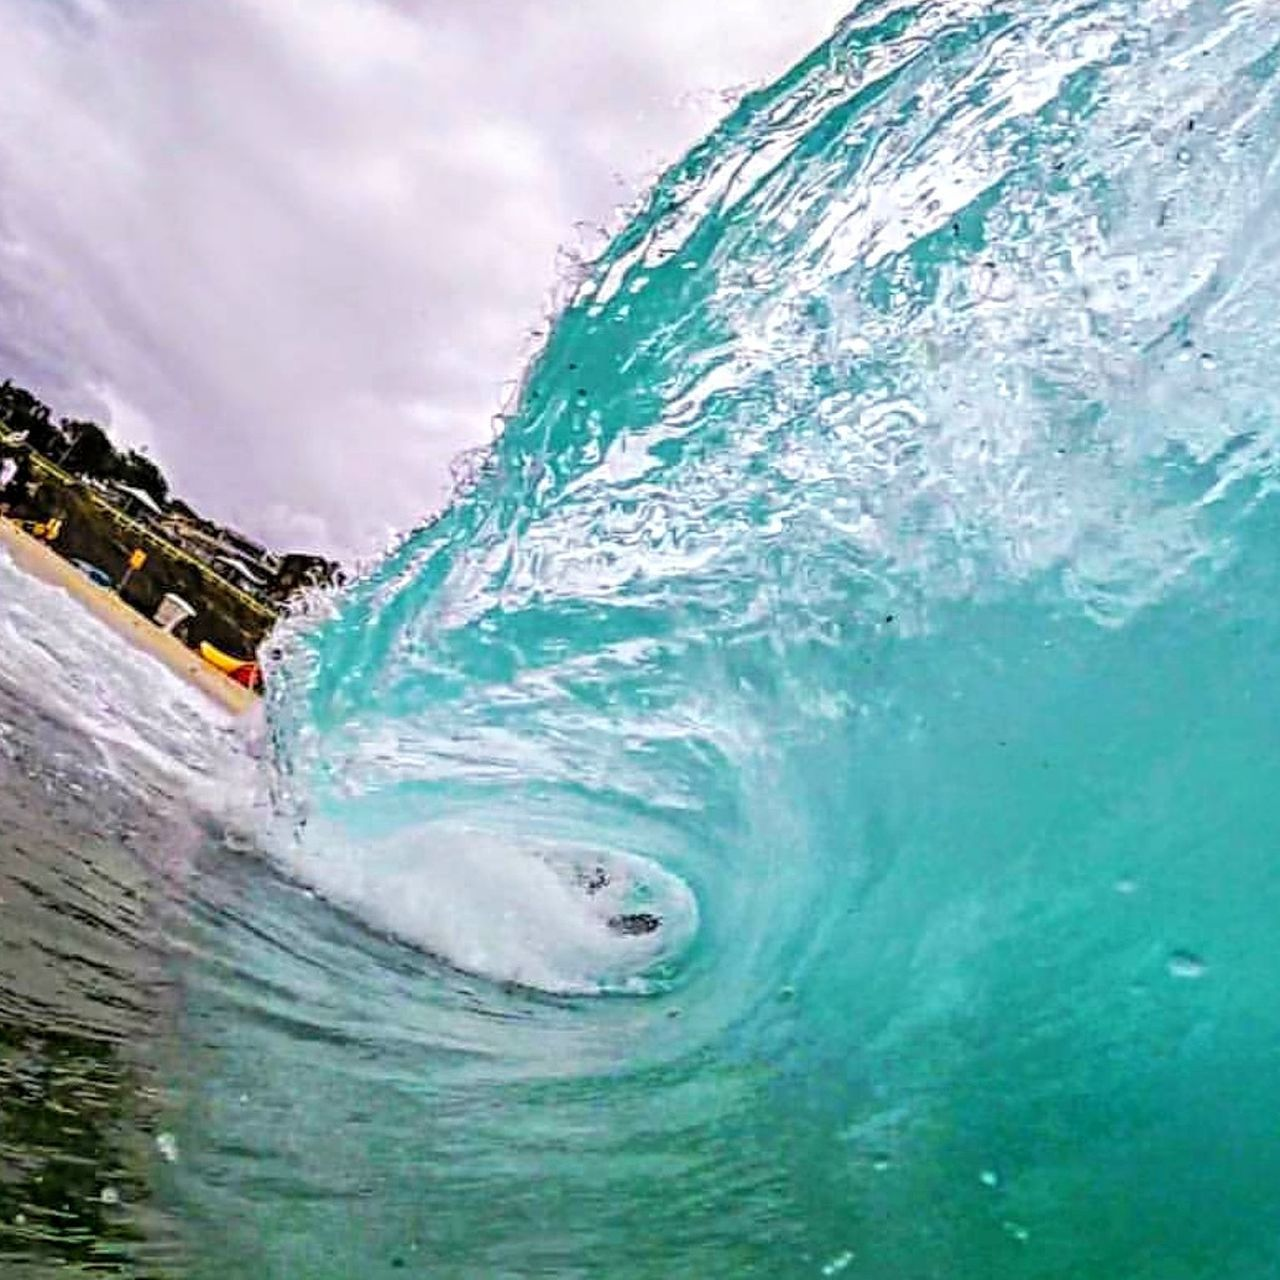 water, motion, sea, wave, sport, nature, power in nature, sky, aquatic sport, splashing, power, day, surfing, outdoors, beauty in nature, cloud - sky, people, turquoise colored, flowing water